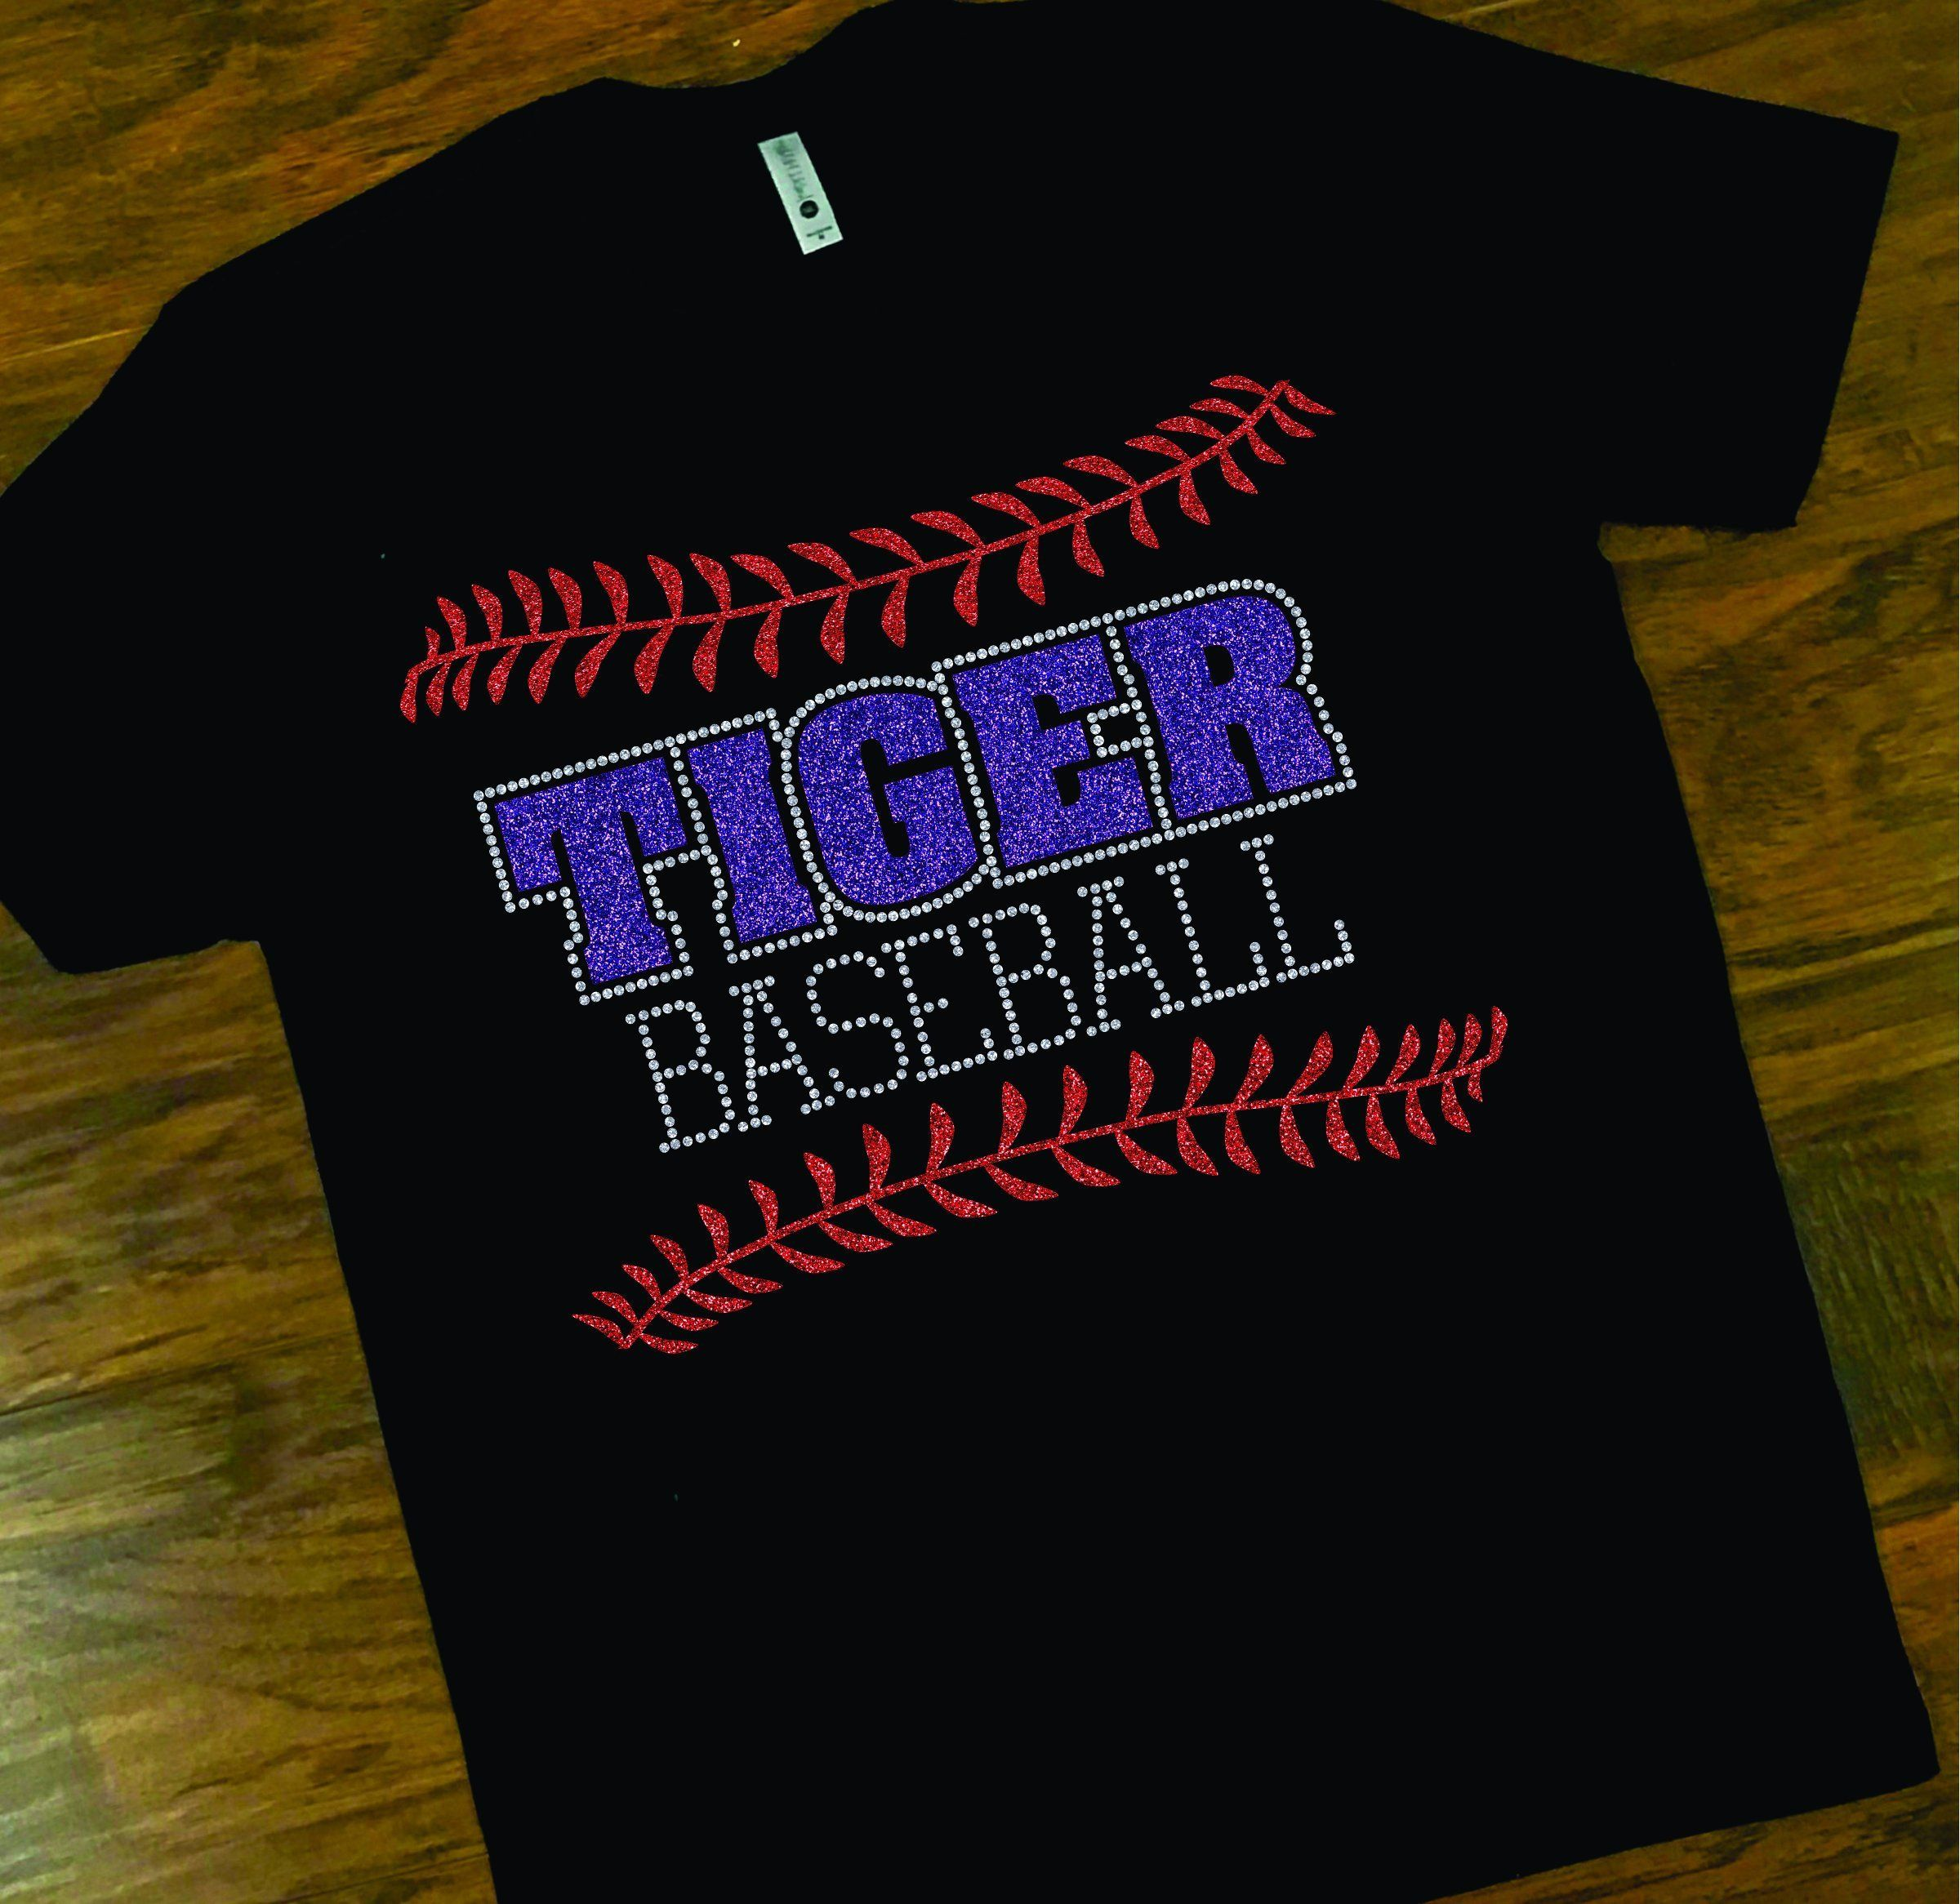 28560d9cf School Spirit Tiger tee, Tiger Baseball Glitter tee, Custom Glitter School  Spirit T-Shirt by shopMKD on Etsy